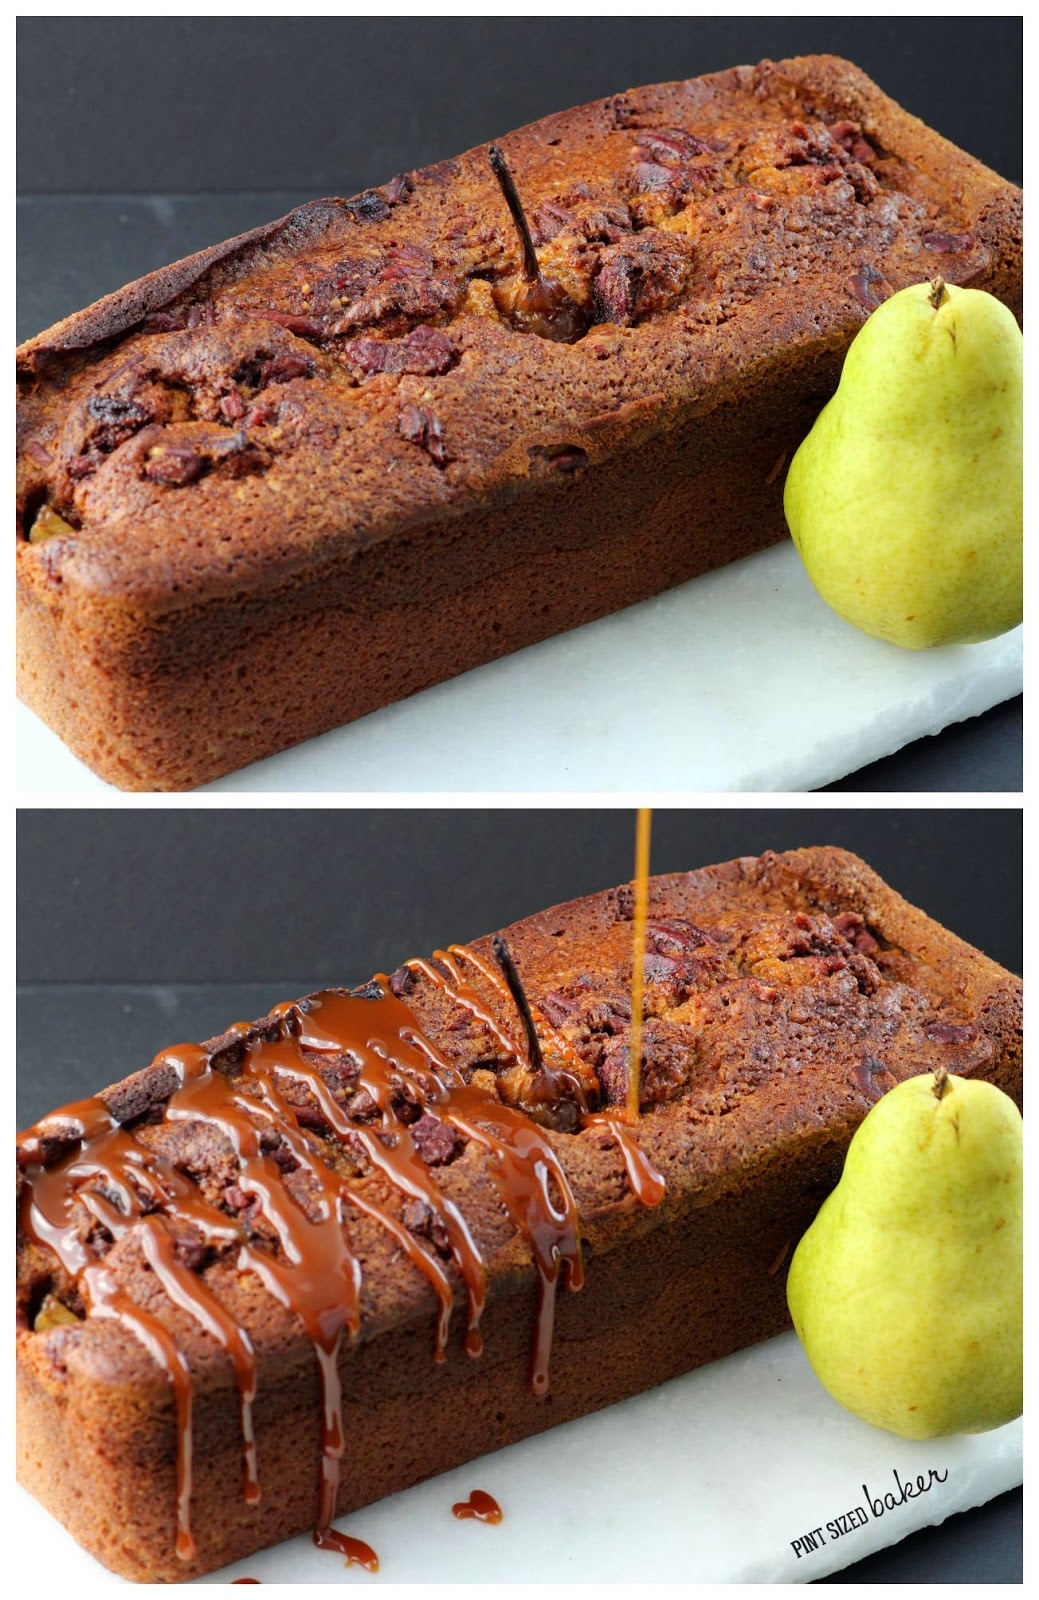 Pumpkin Quick Bread baked with Poached Pears and then drizzled with Salted Caramel.